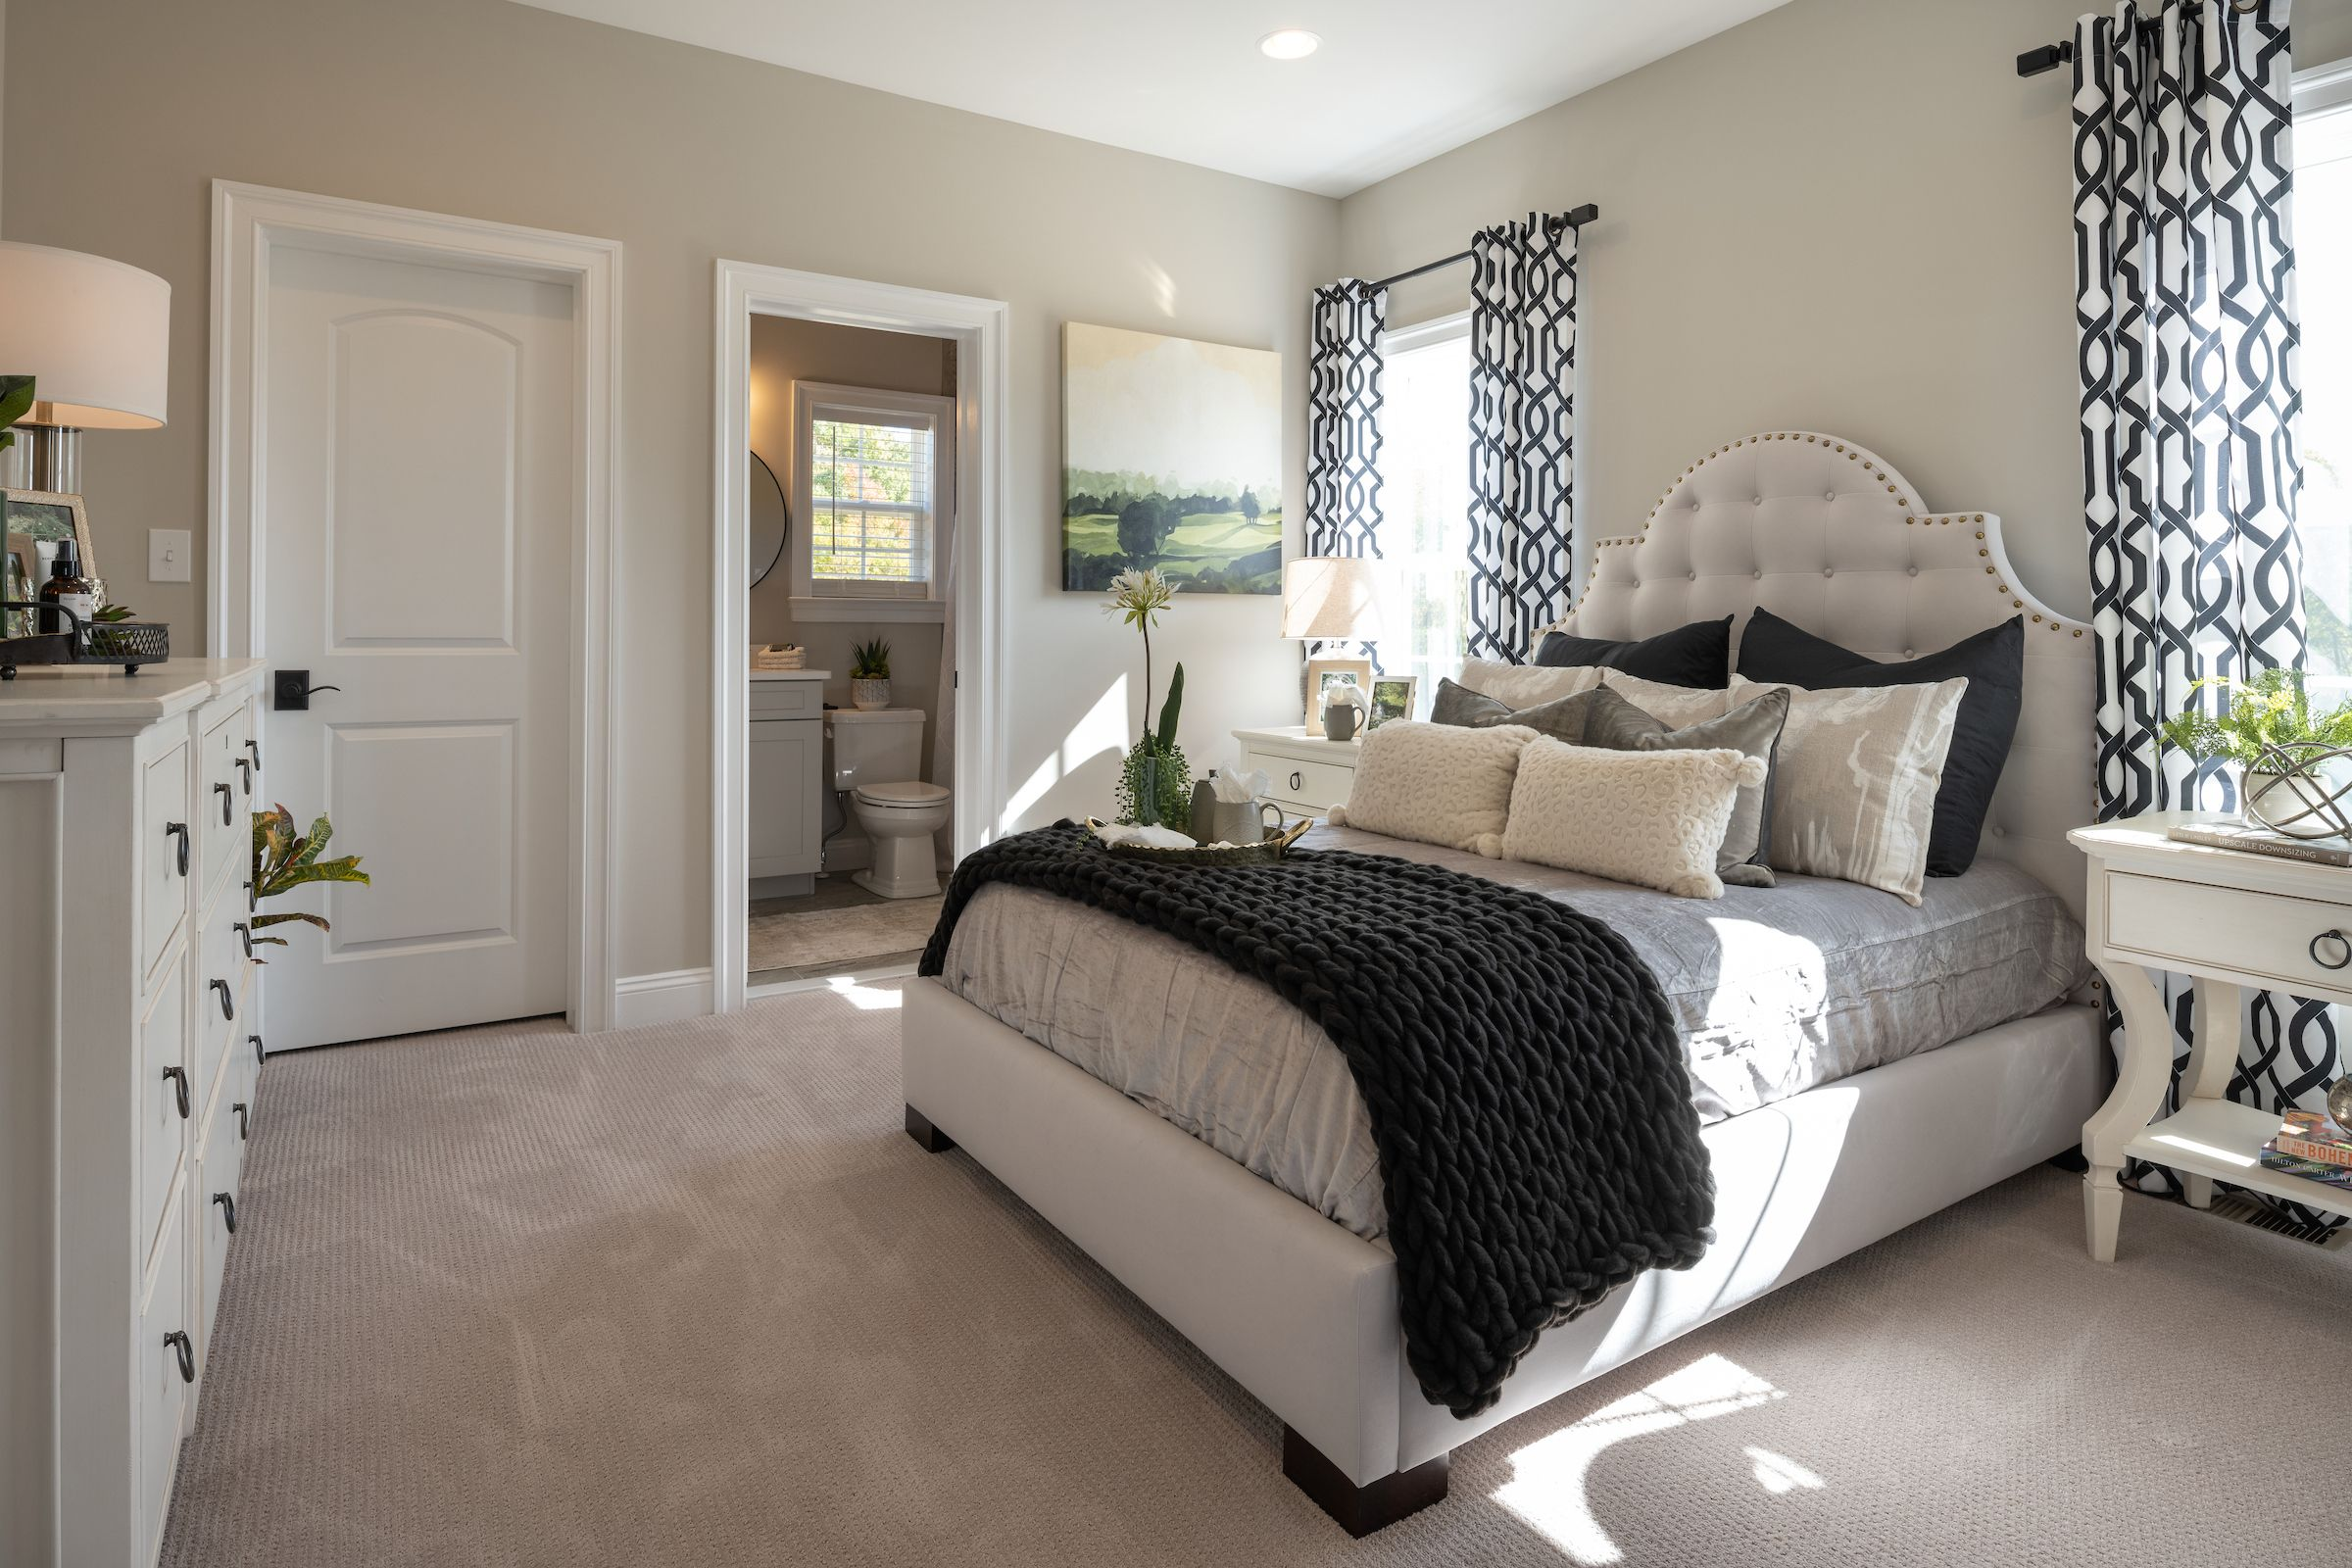 Bedroom featured in the Hawthorne Farmhouse By Keystone Custom Homes in Reading, PA